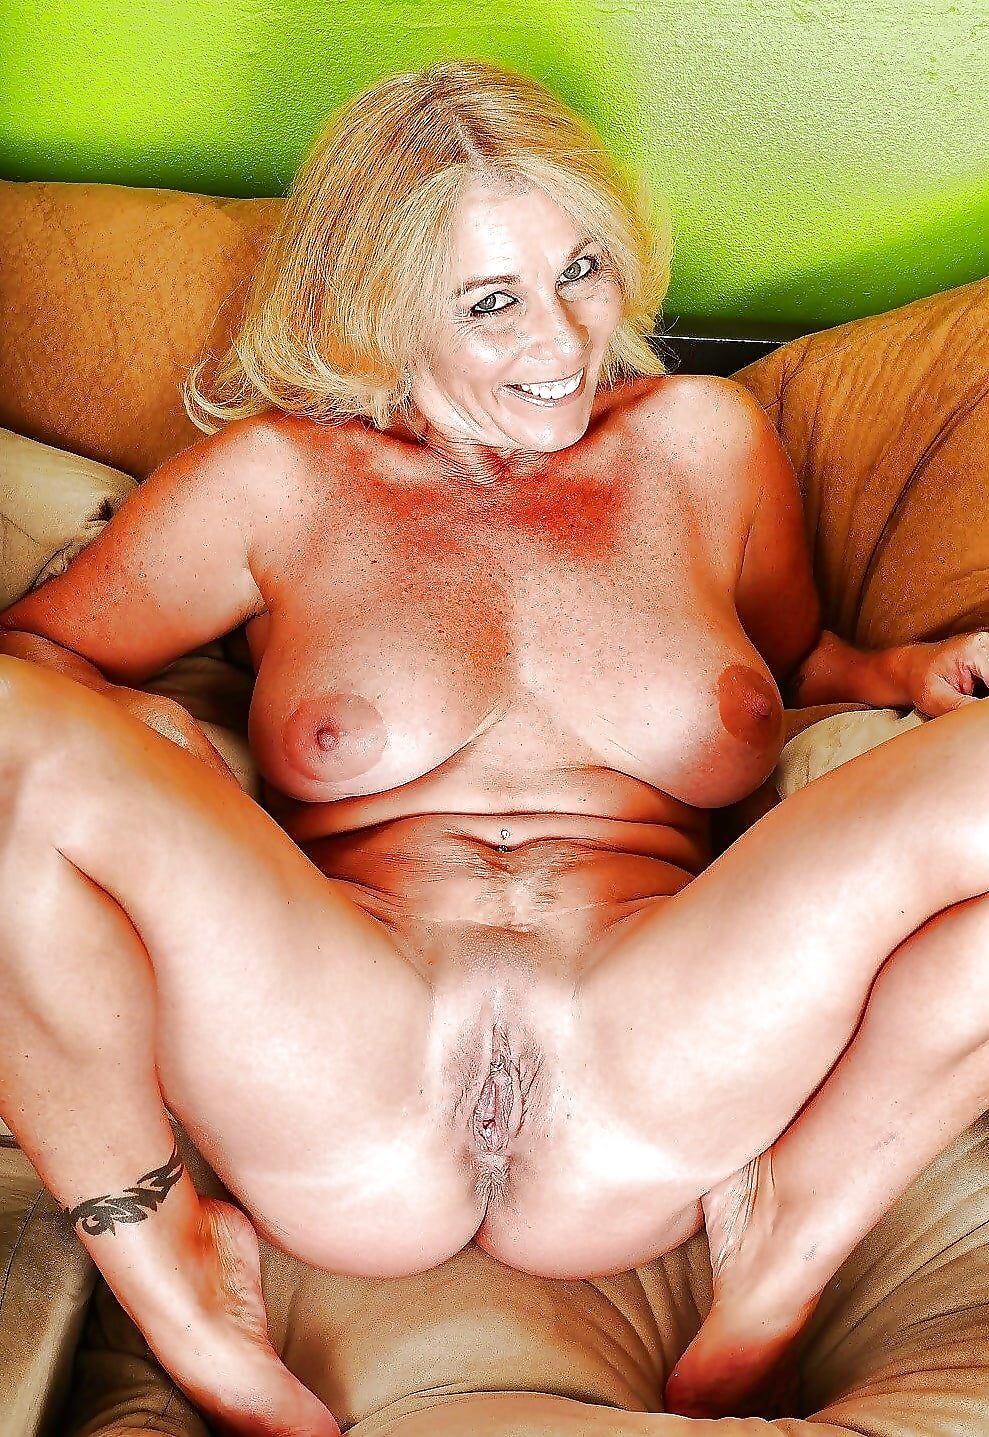 Pussy old woman hot — photo 14